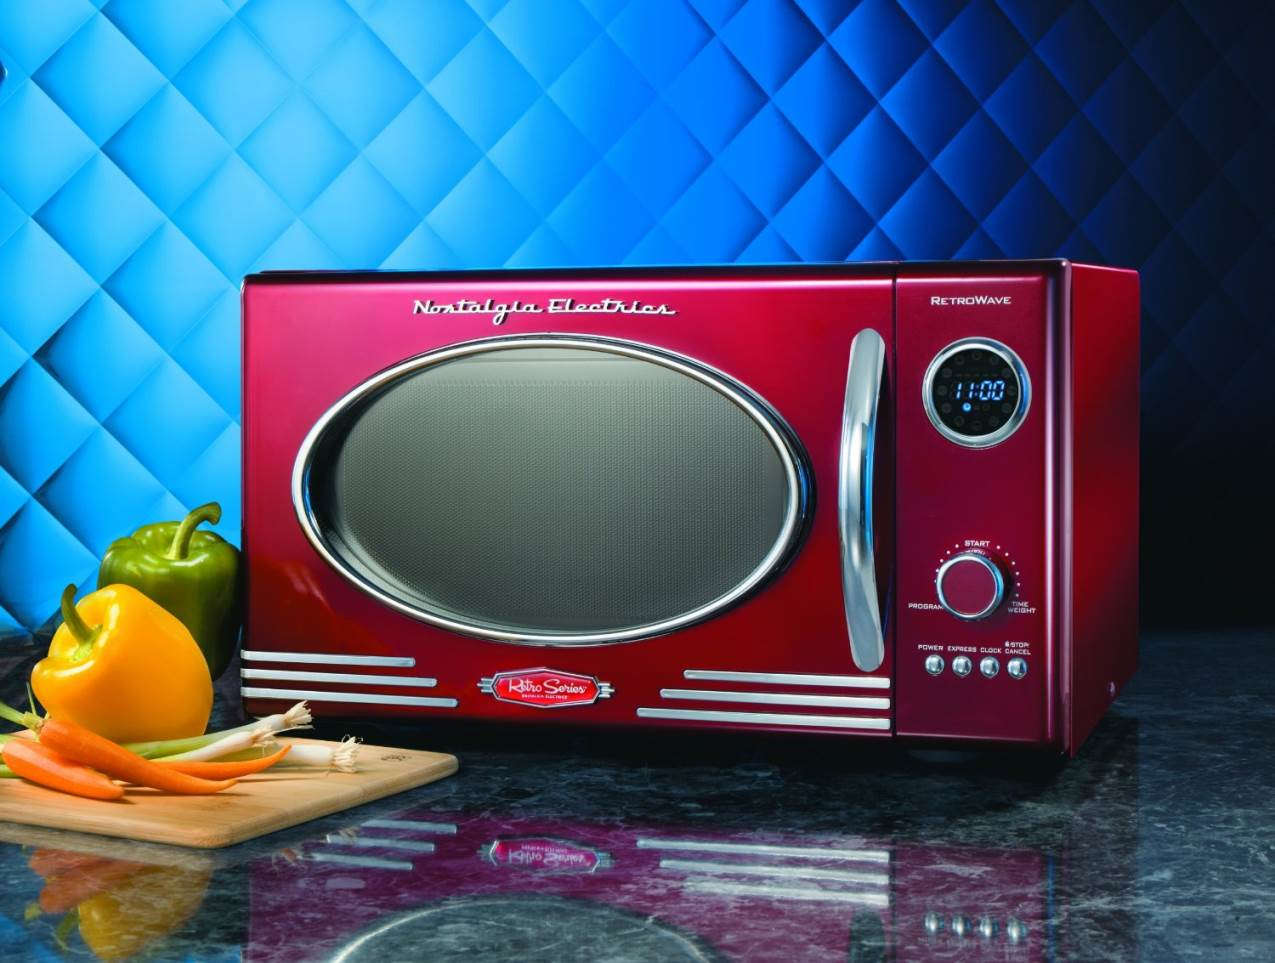 Retro Microwave Oven The Kitchen Times